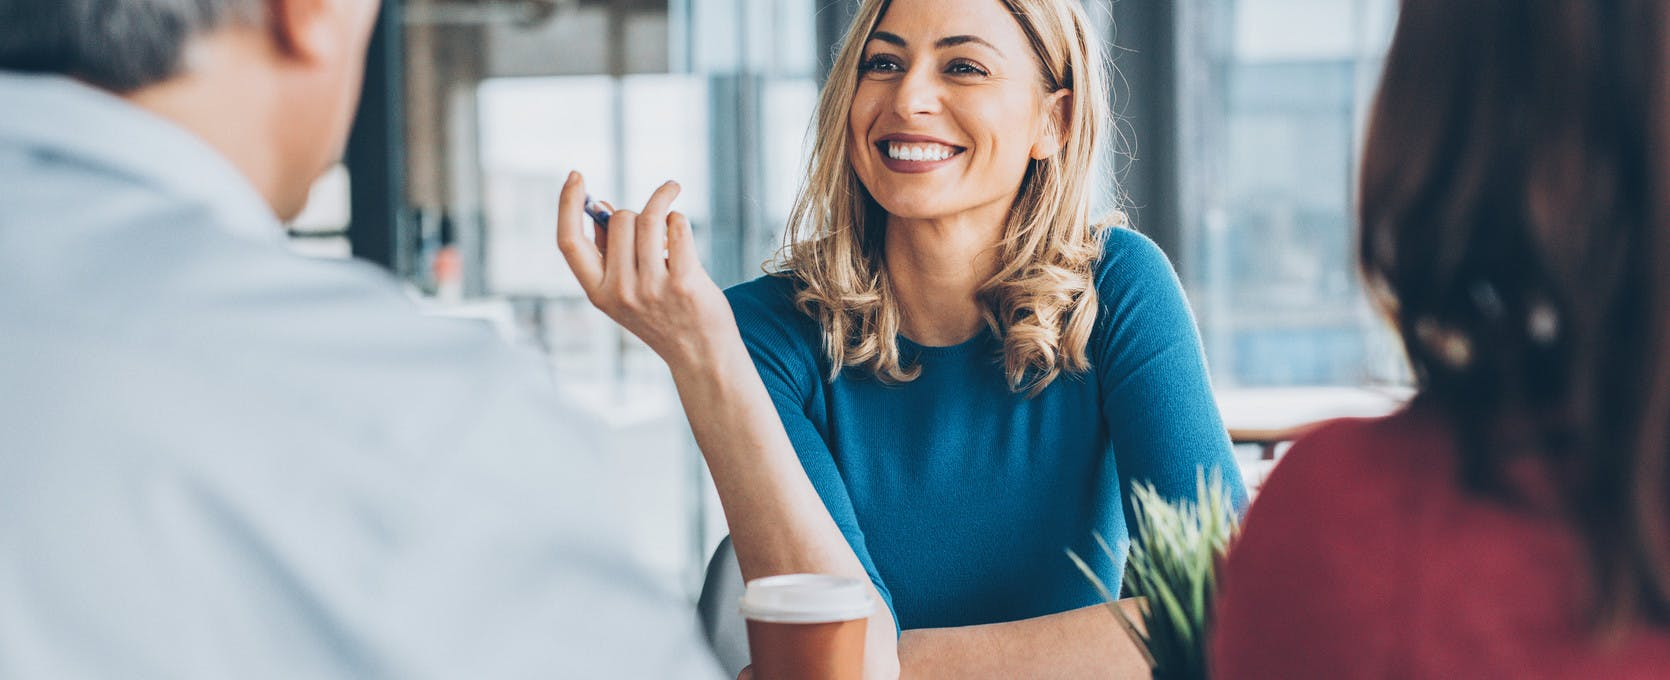 Woman smiling at her team during a business meeting